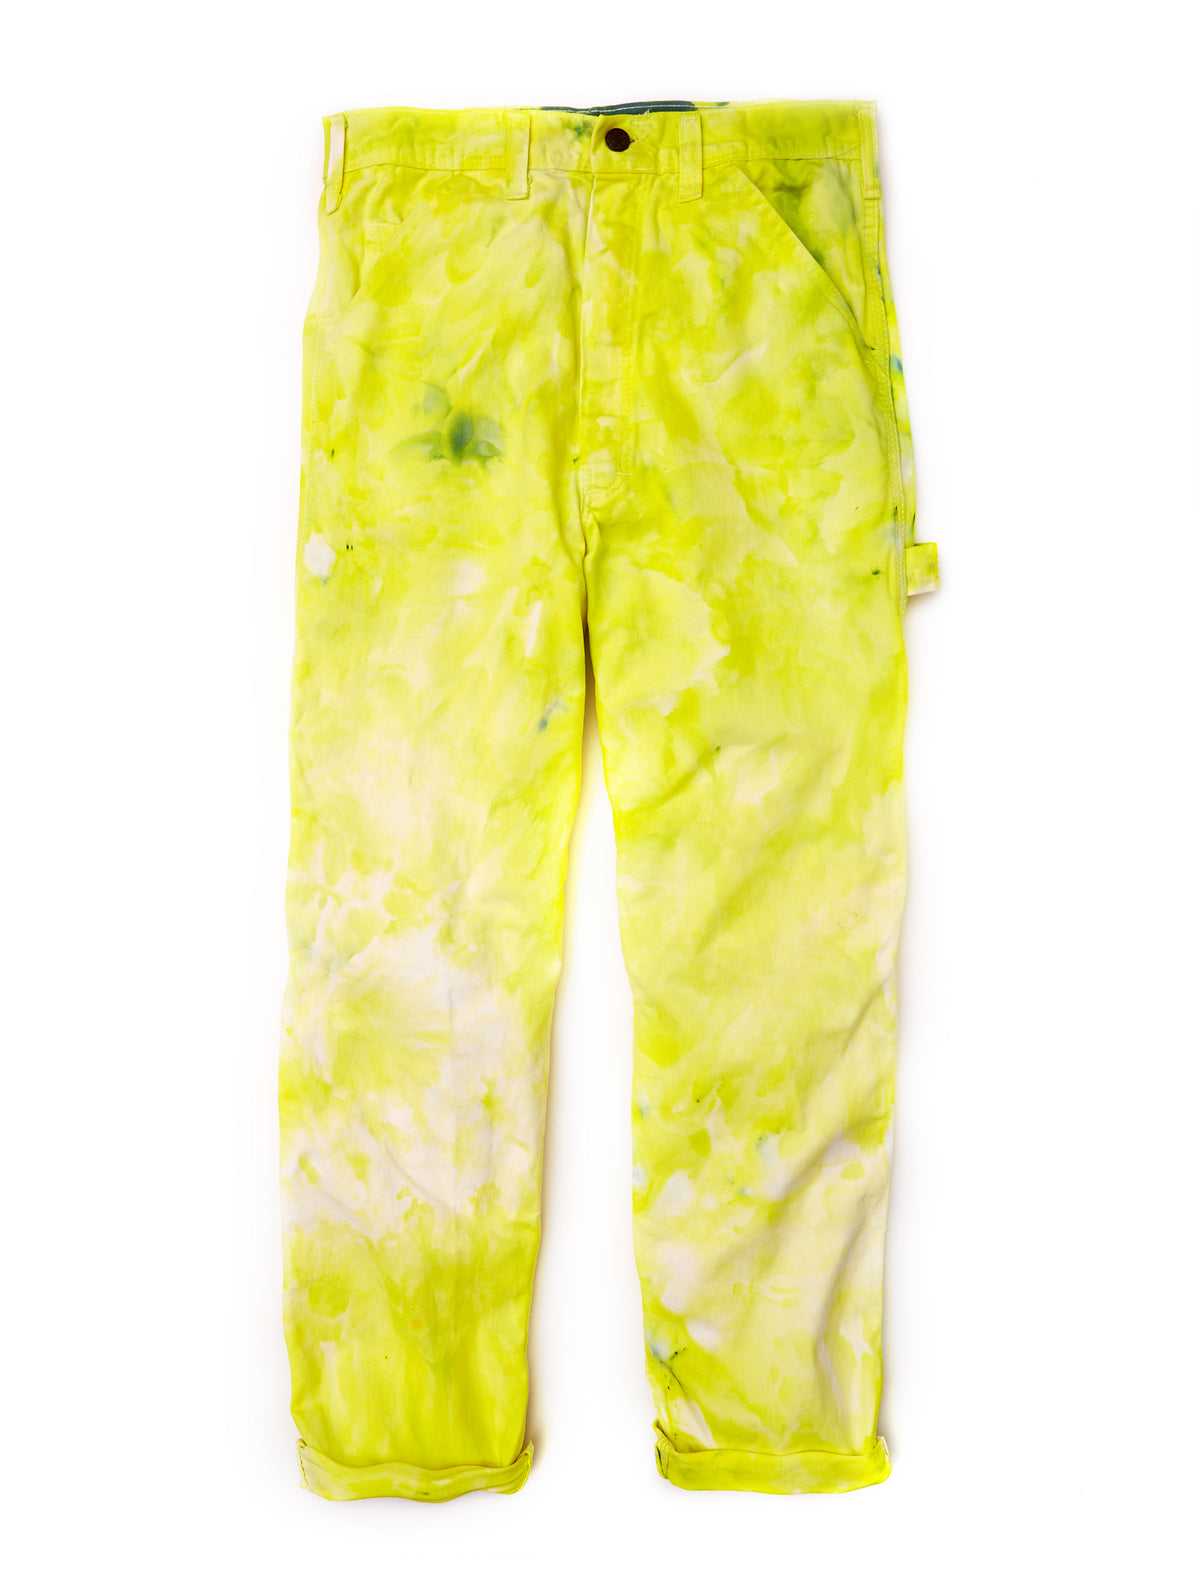 Painter's Pants in Wasabi